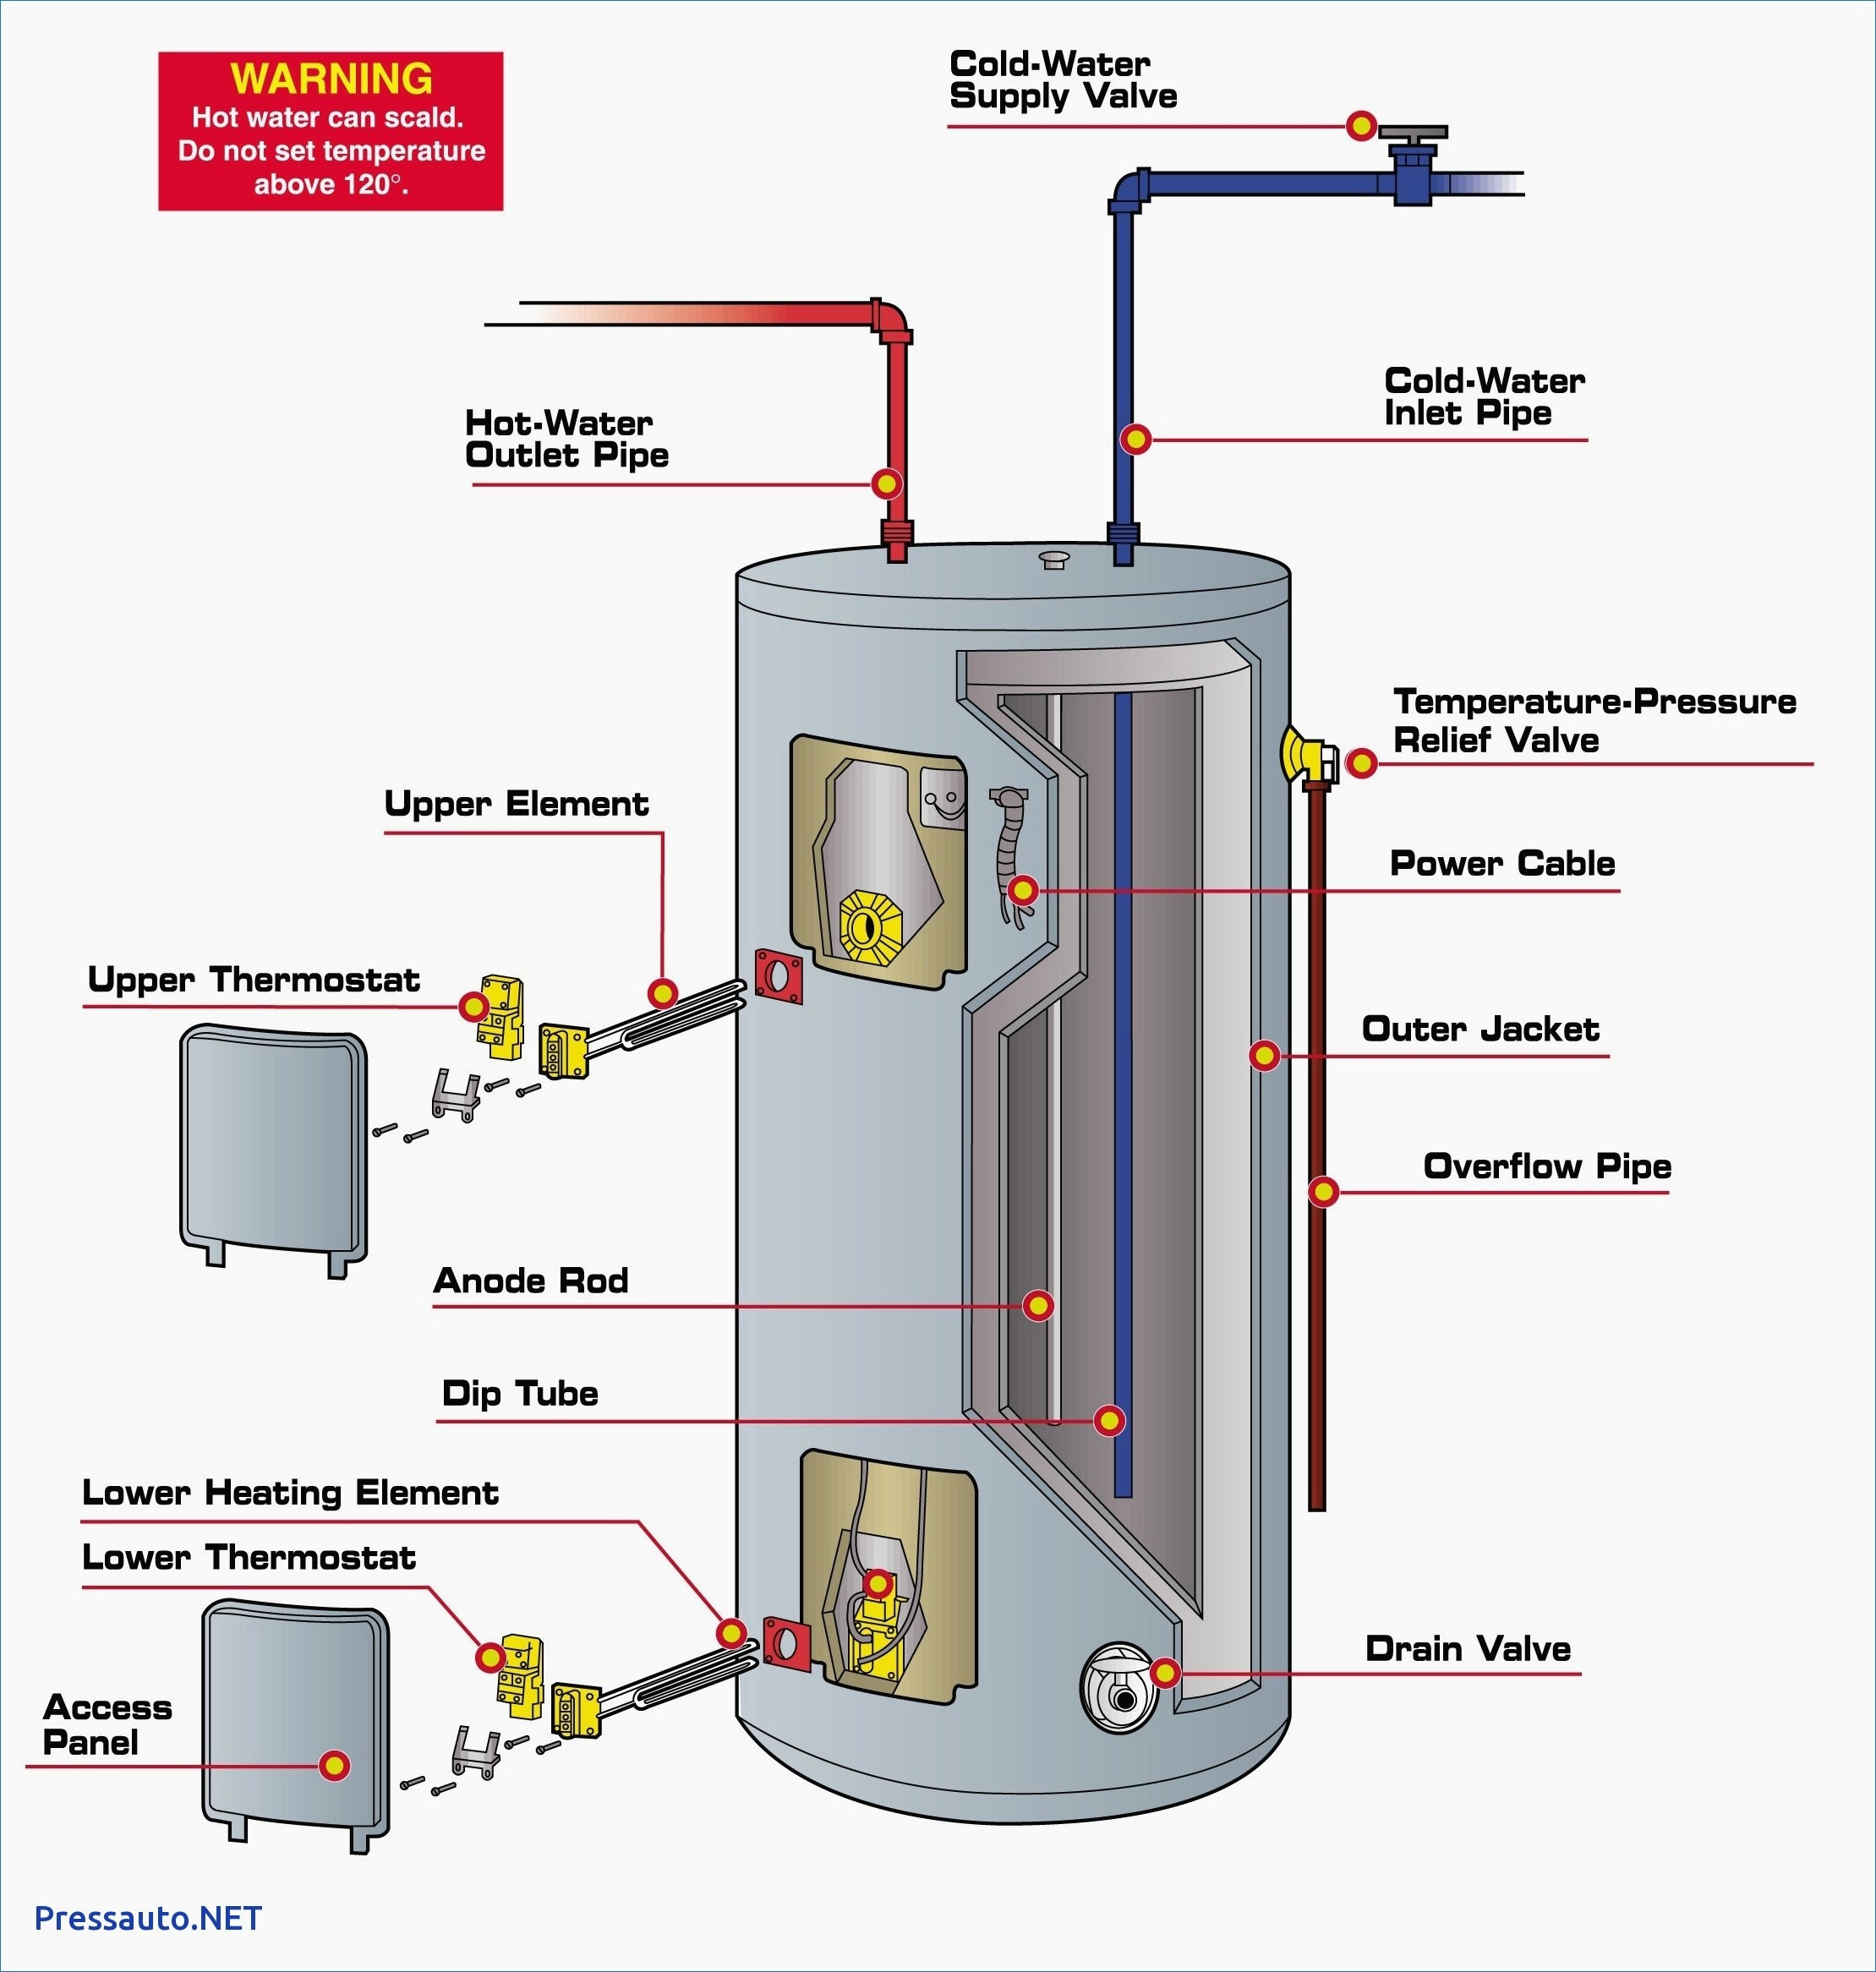 tankless water heater wiring diagram Collection-Wiring Diagram Electric Water Heater Fresh New Hot Water Heater Wiring Diagram Diagram 19-e